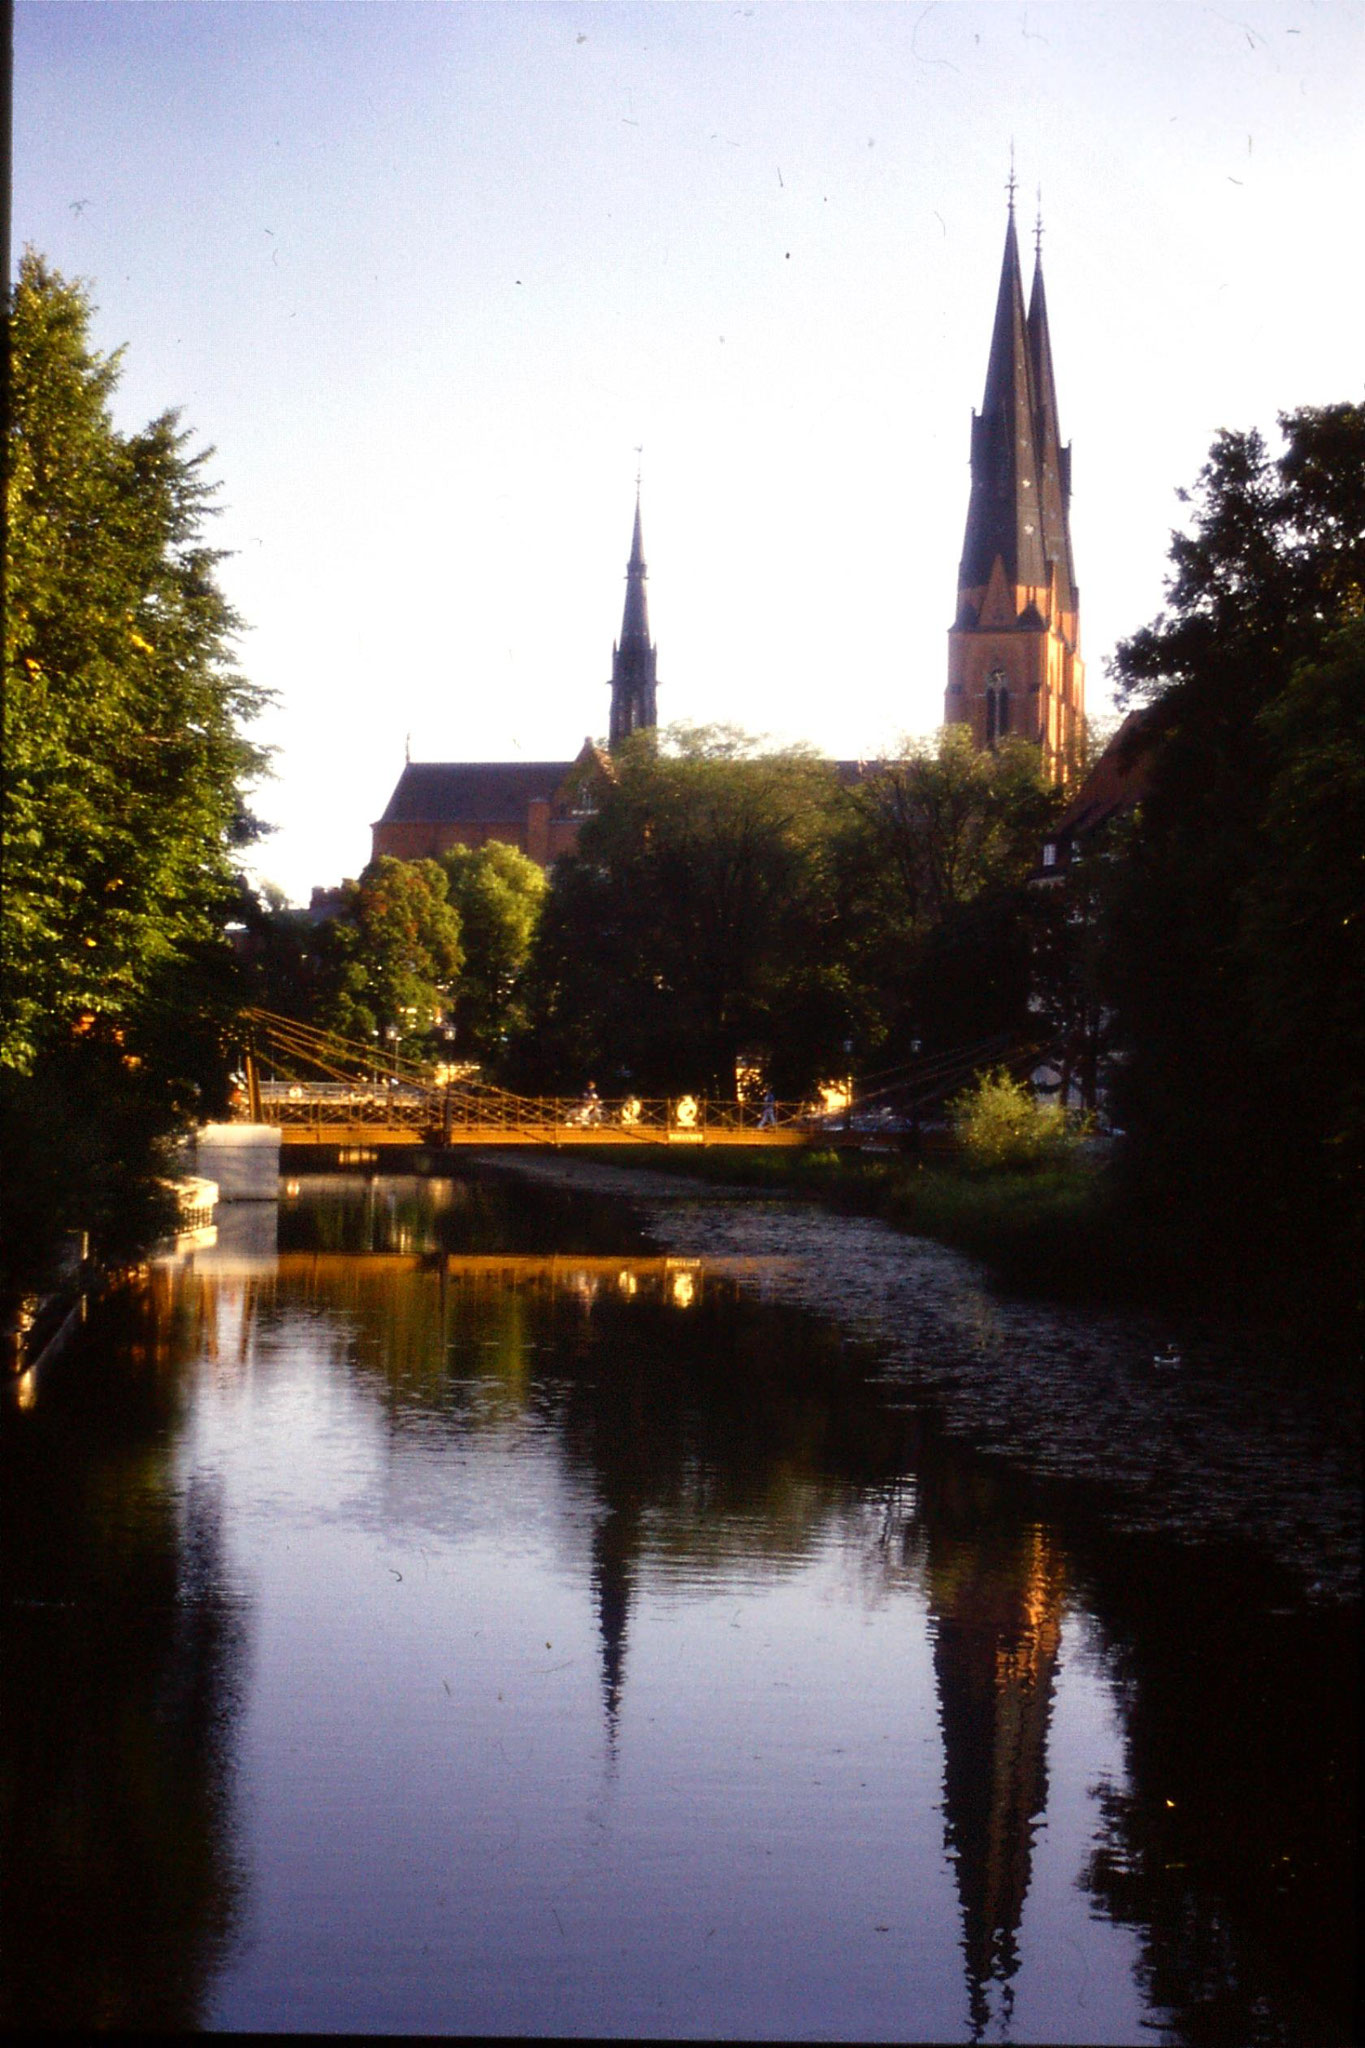 9/9/1988: 1: Uppsala cathedral